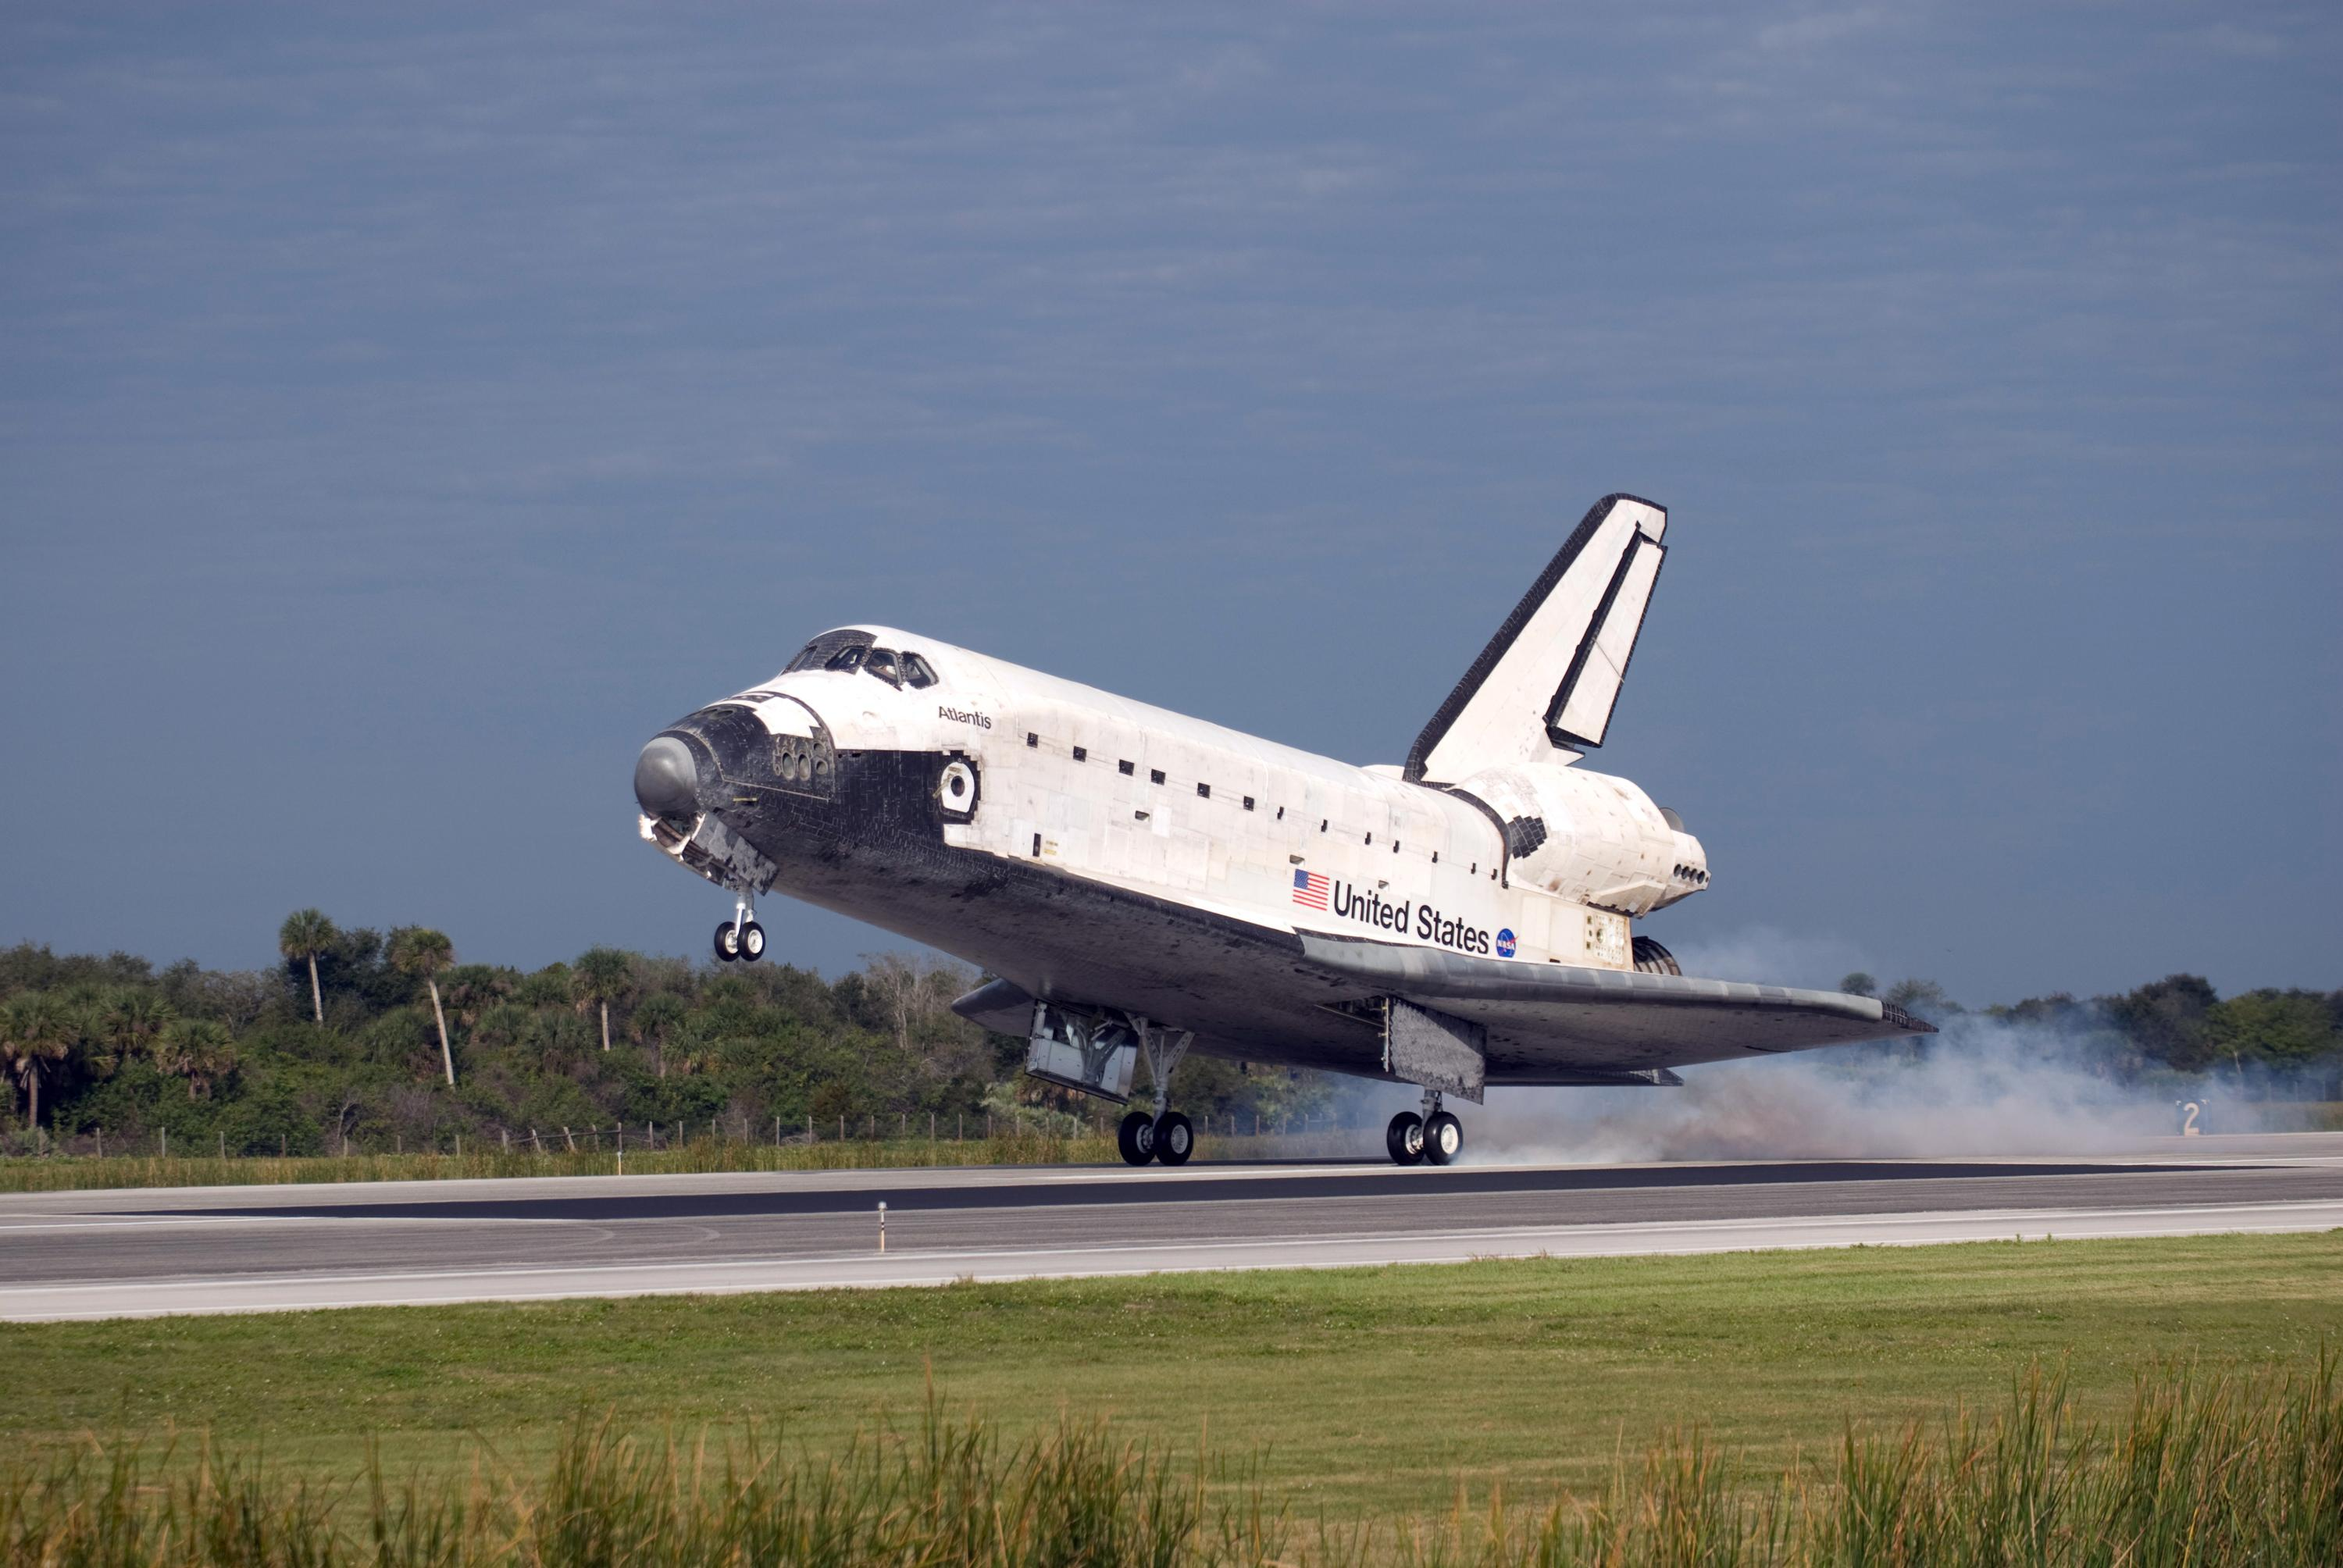 space shuttle landing explained - photo #11